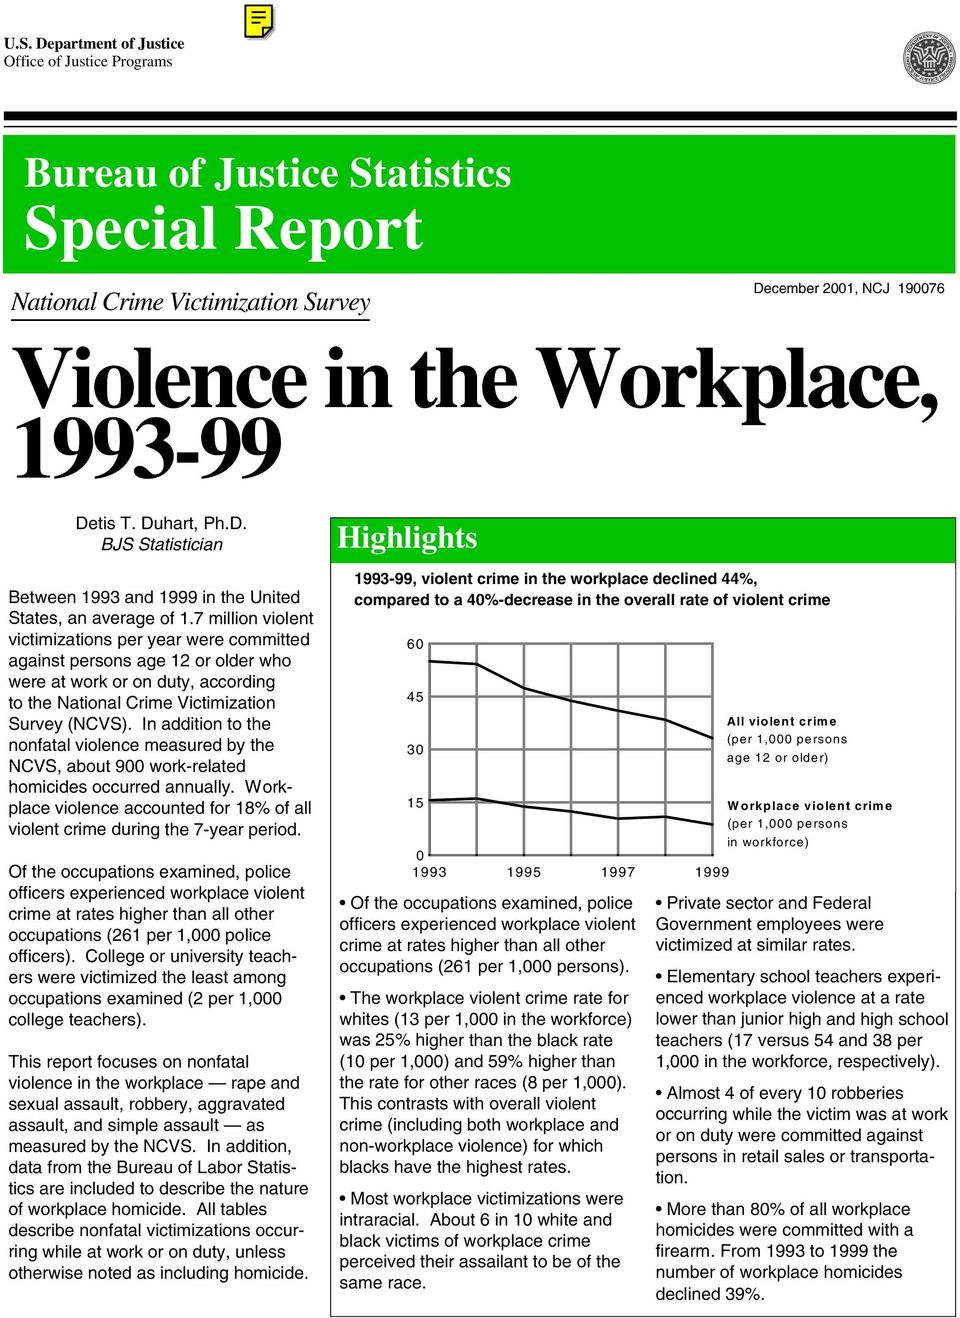 7 million violent victimizations per year were committed against persons age 12 or older who were at work or on duty, according to the National Crime Victimization Survey (NCVS).